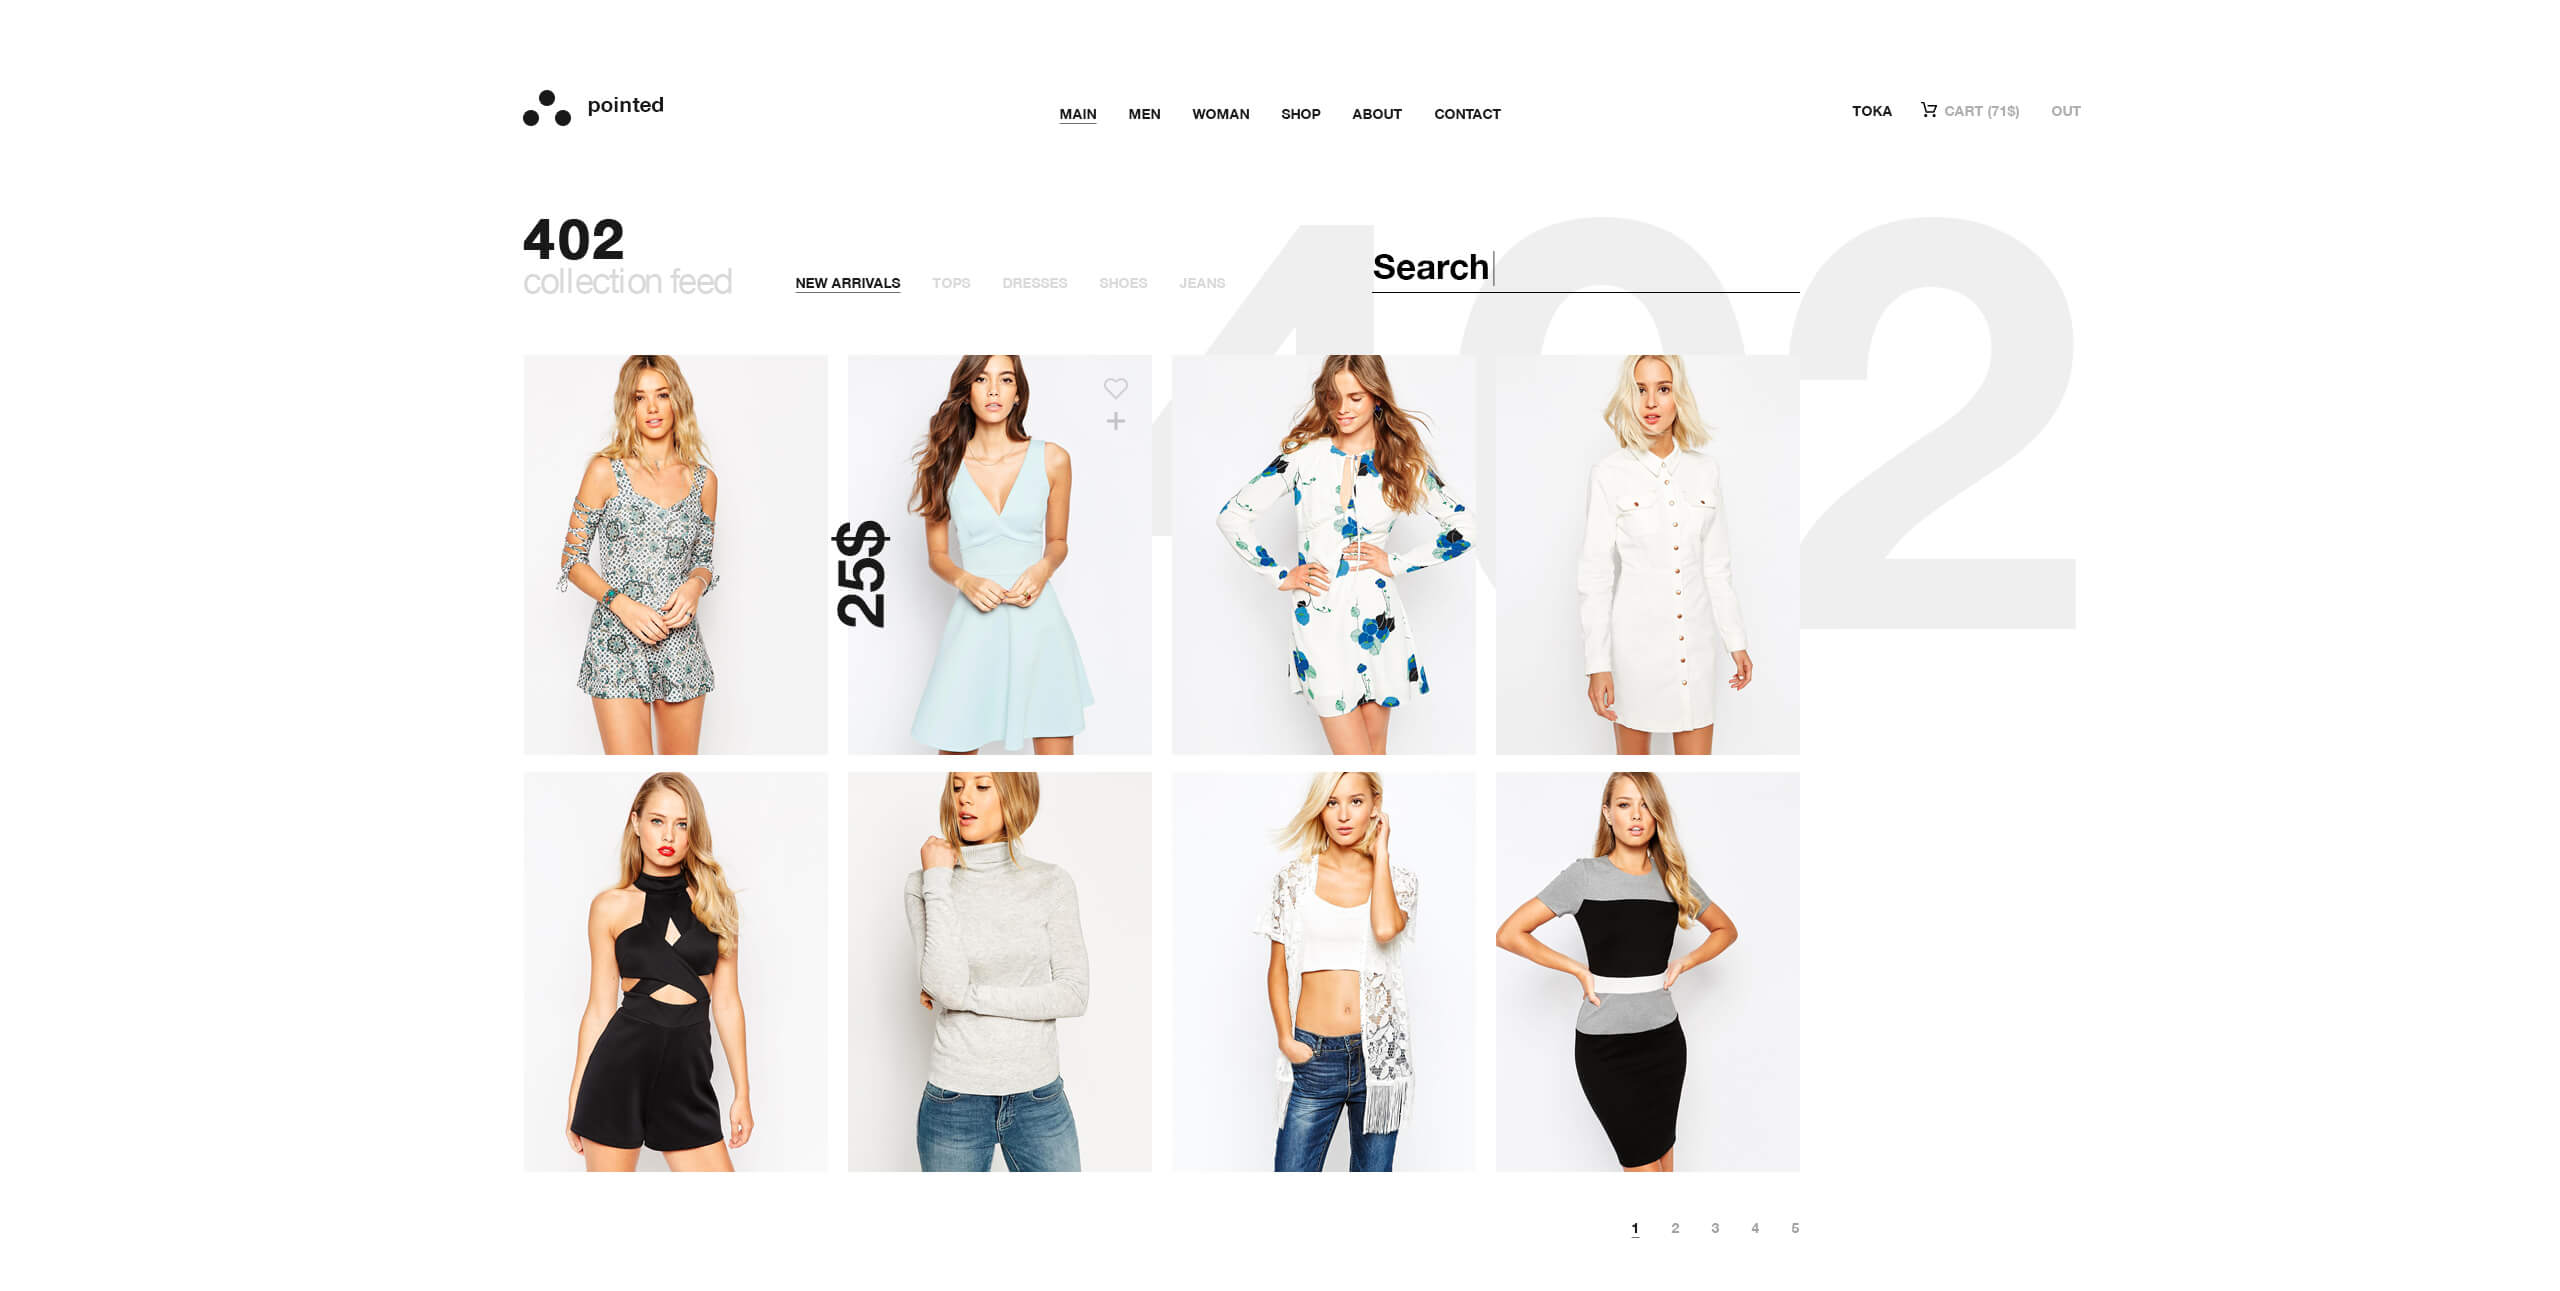 Building an apparel brand web presence